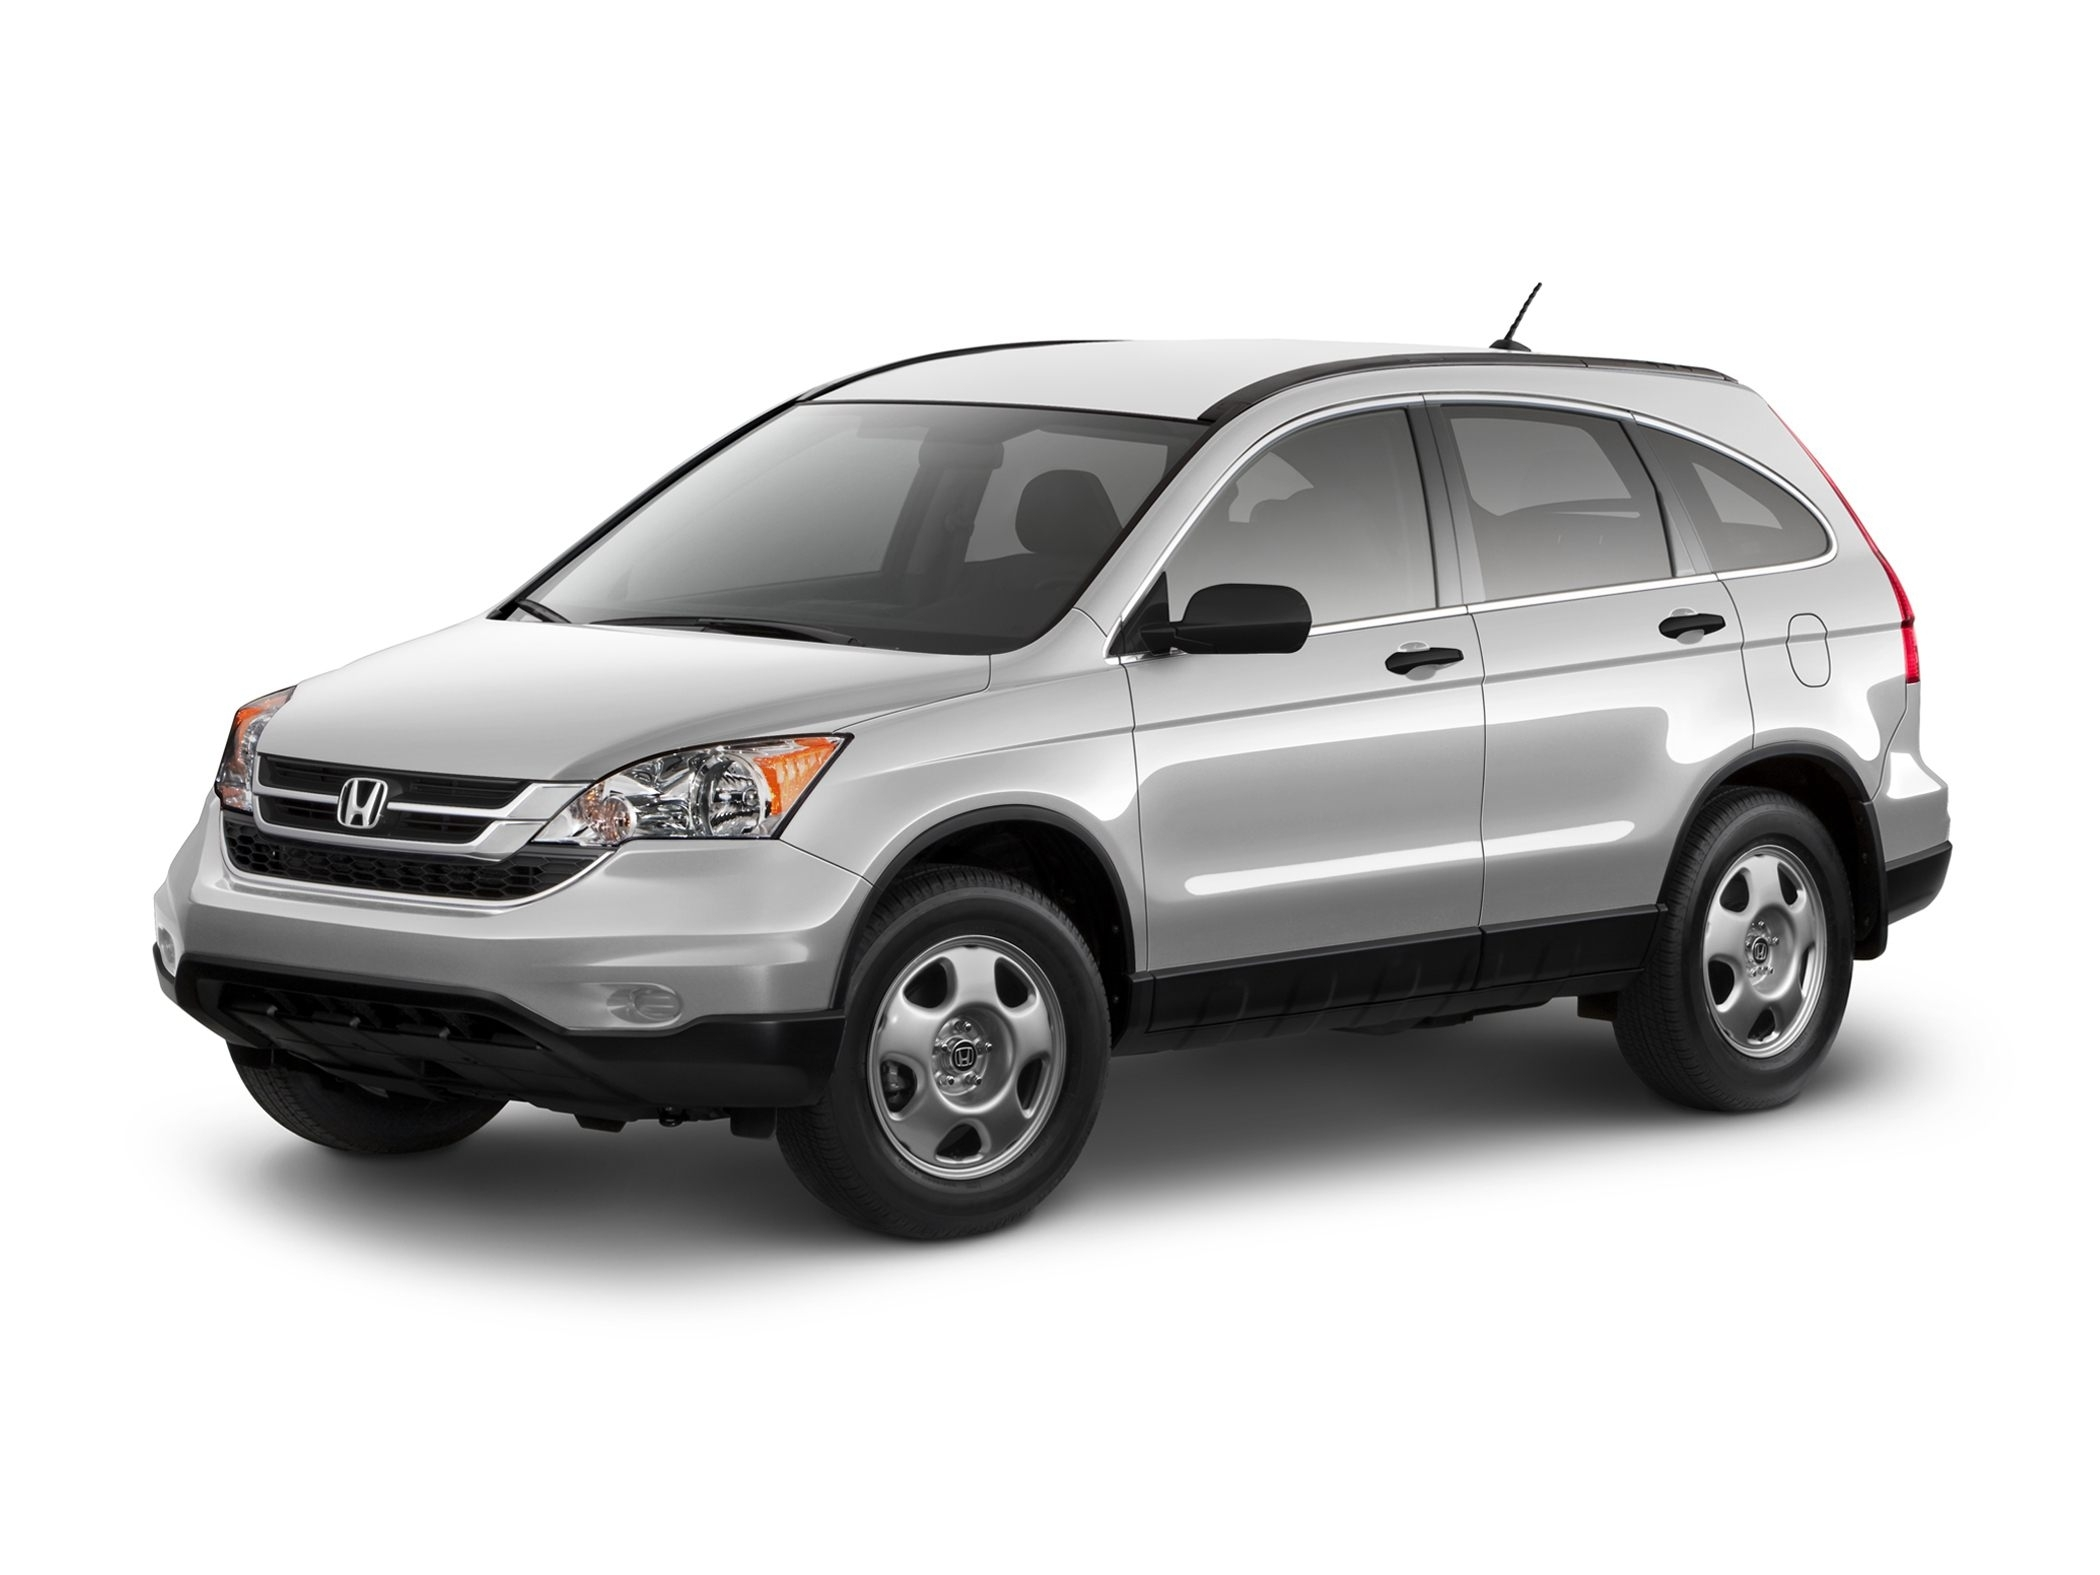 Honda crv invoice price invoice template ideas for 2015 honda crv price